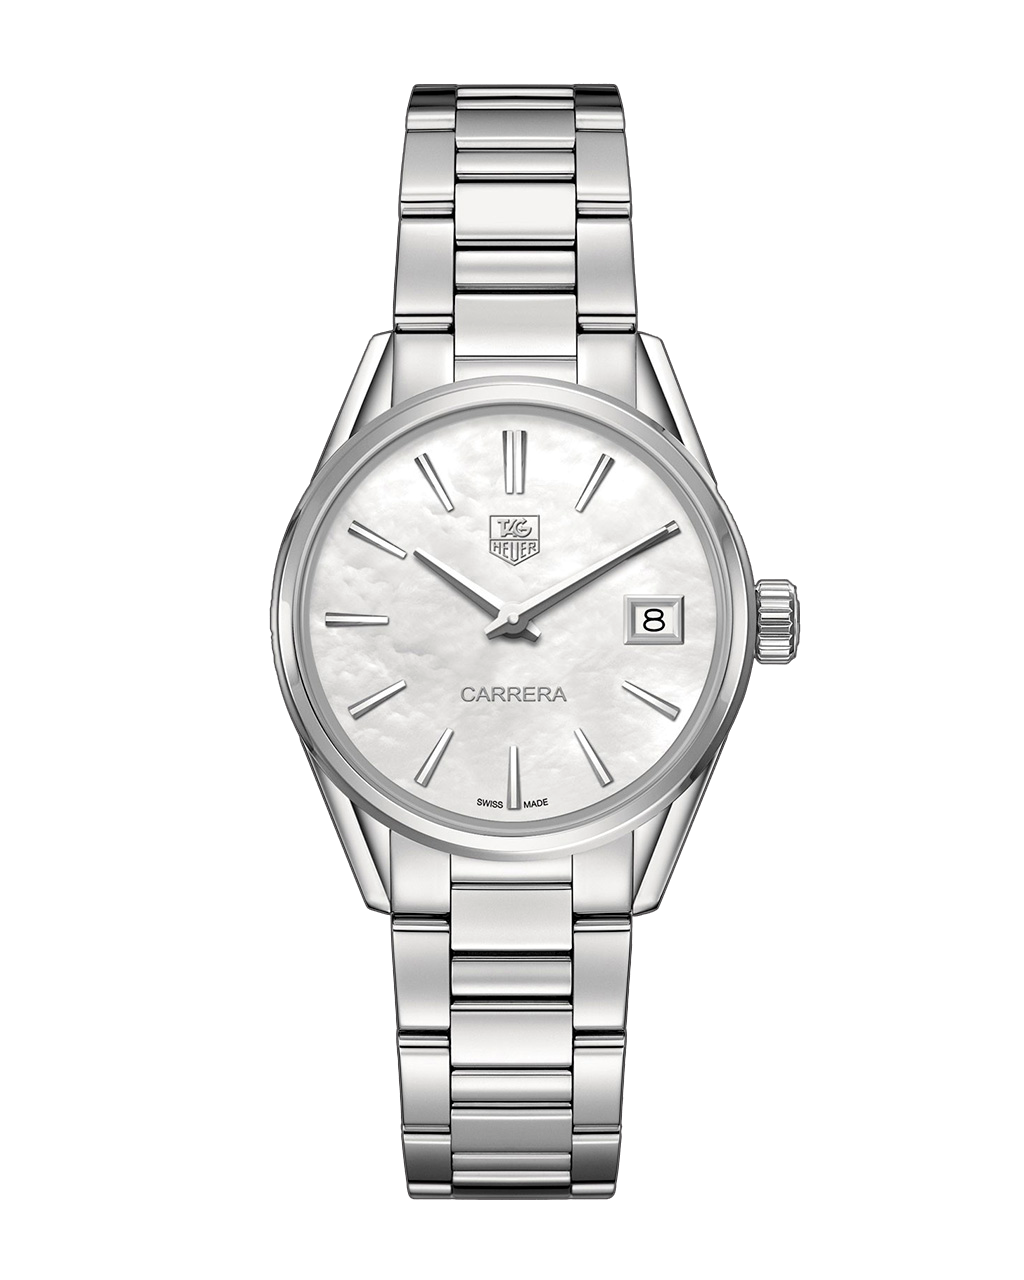 Ρολόι TAG HEUER Carrera WAR1311.BA0773   brands tag heuer